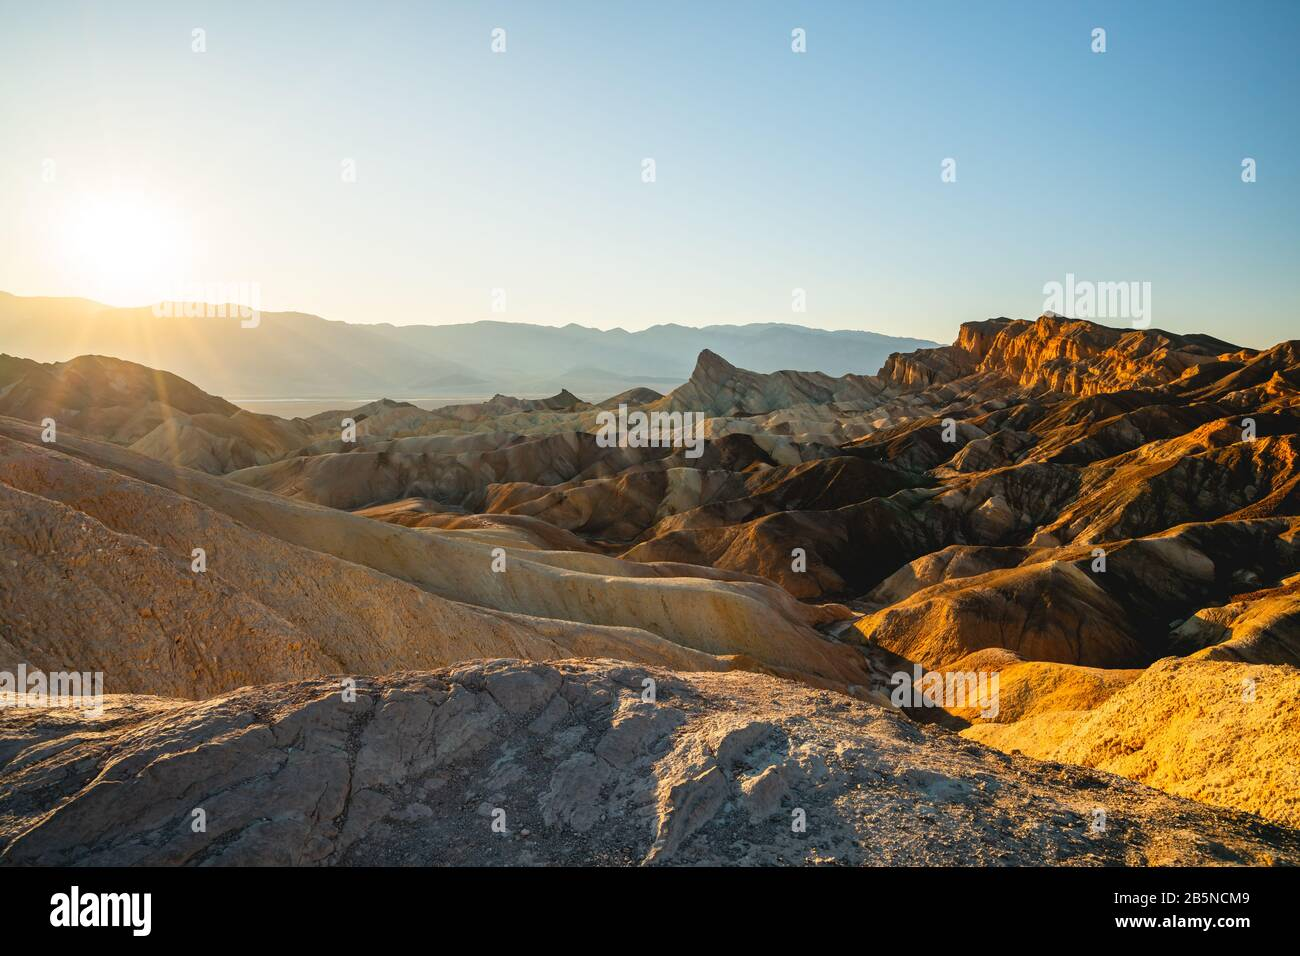 Red Canyon, Manly Beacon, sunset. Zabriskie Point Loop in Death Valley National Park, California Stock Photo